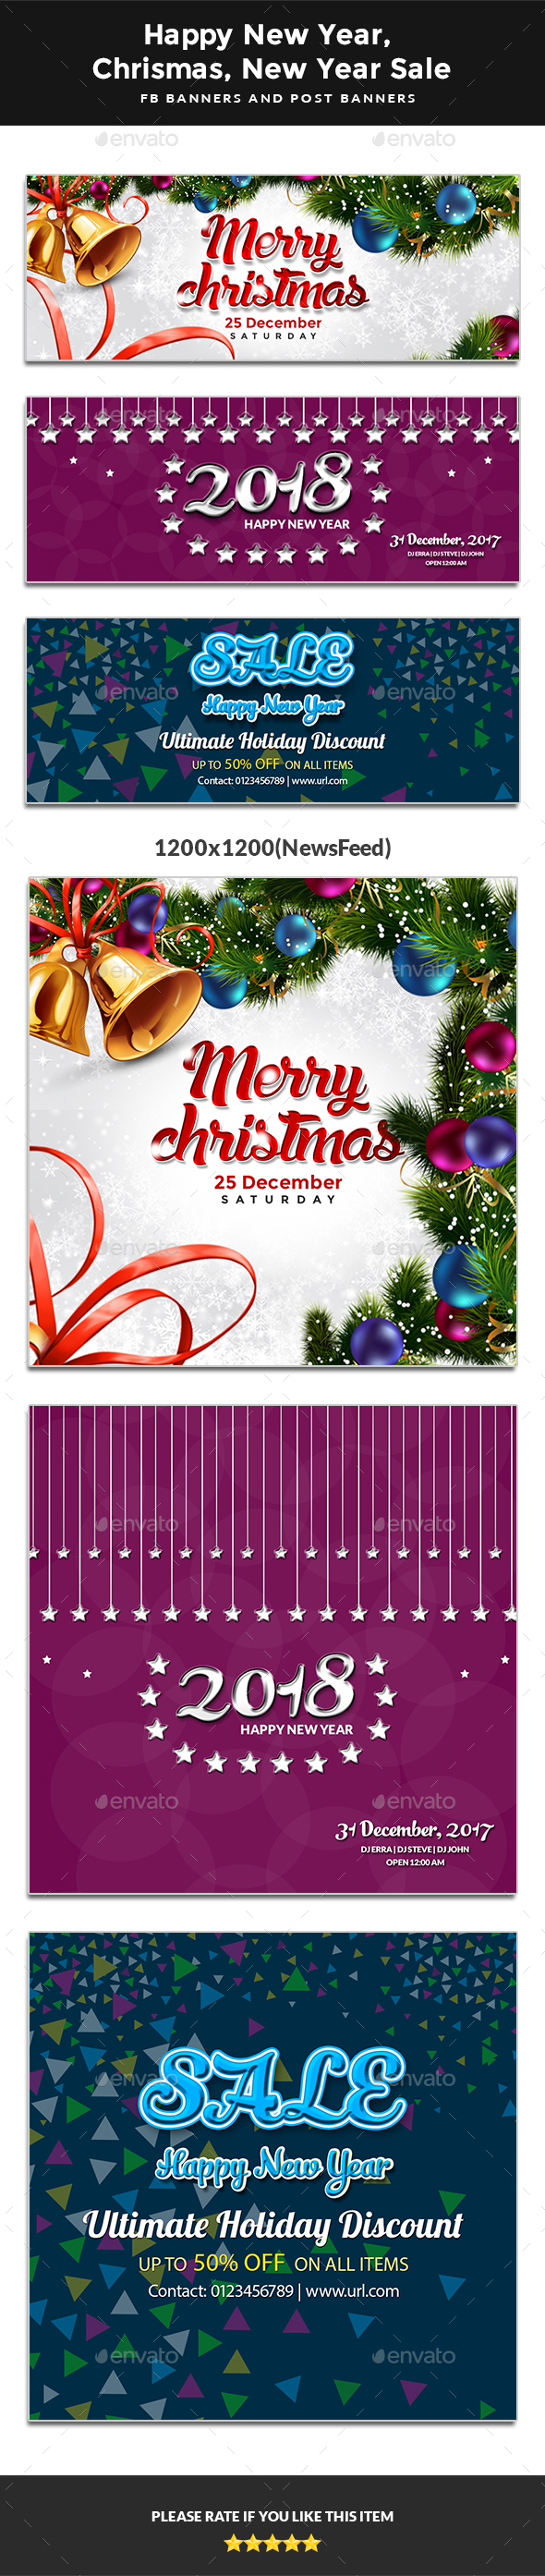 GraphicRiver 2018 Happy New Year Happy Christmas New Year Sale FB Covers & Post Banners 20975030